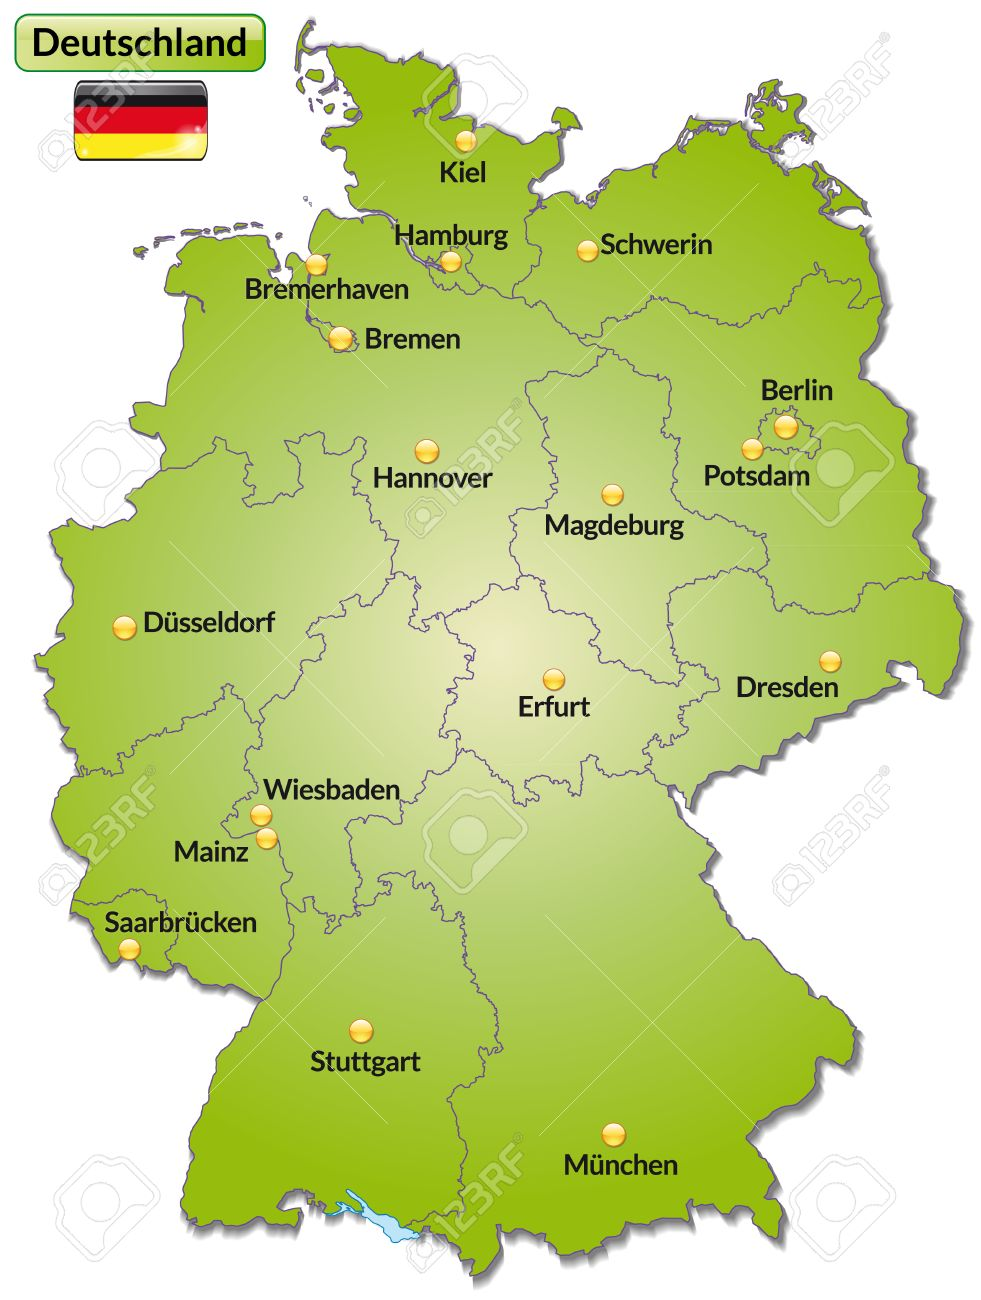 Map Of Germany Major Cities.Map Of Germany With Main Cities In Green